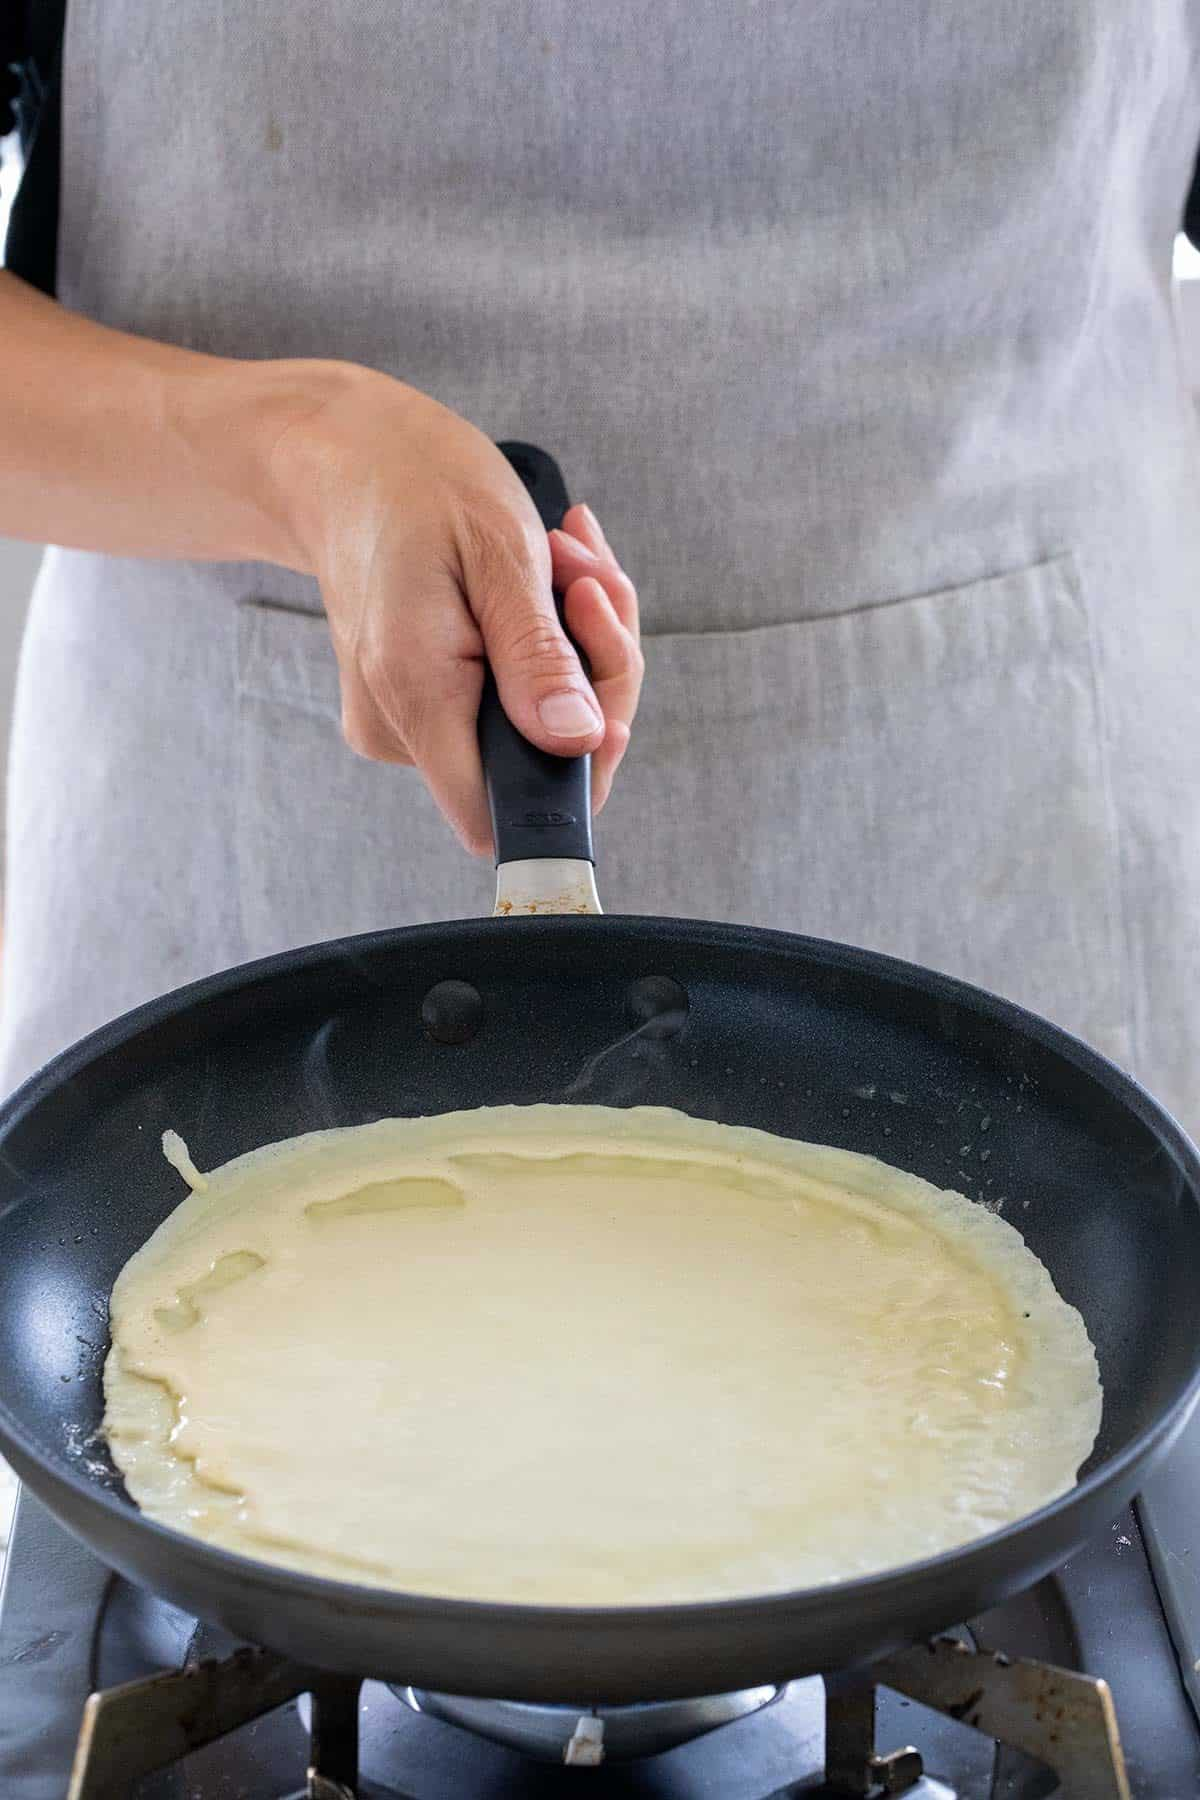 tilt the pan to spread the batter